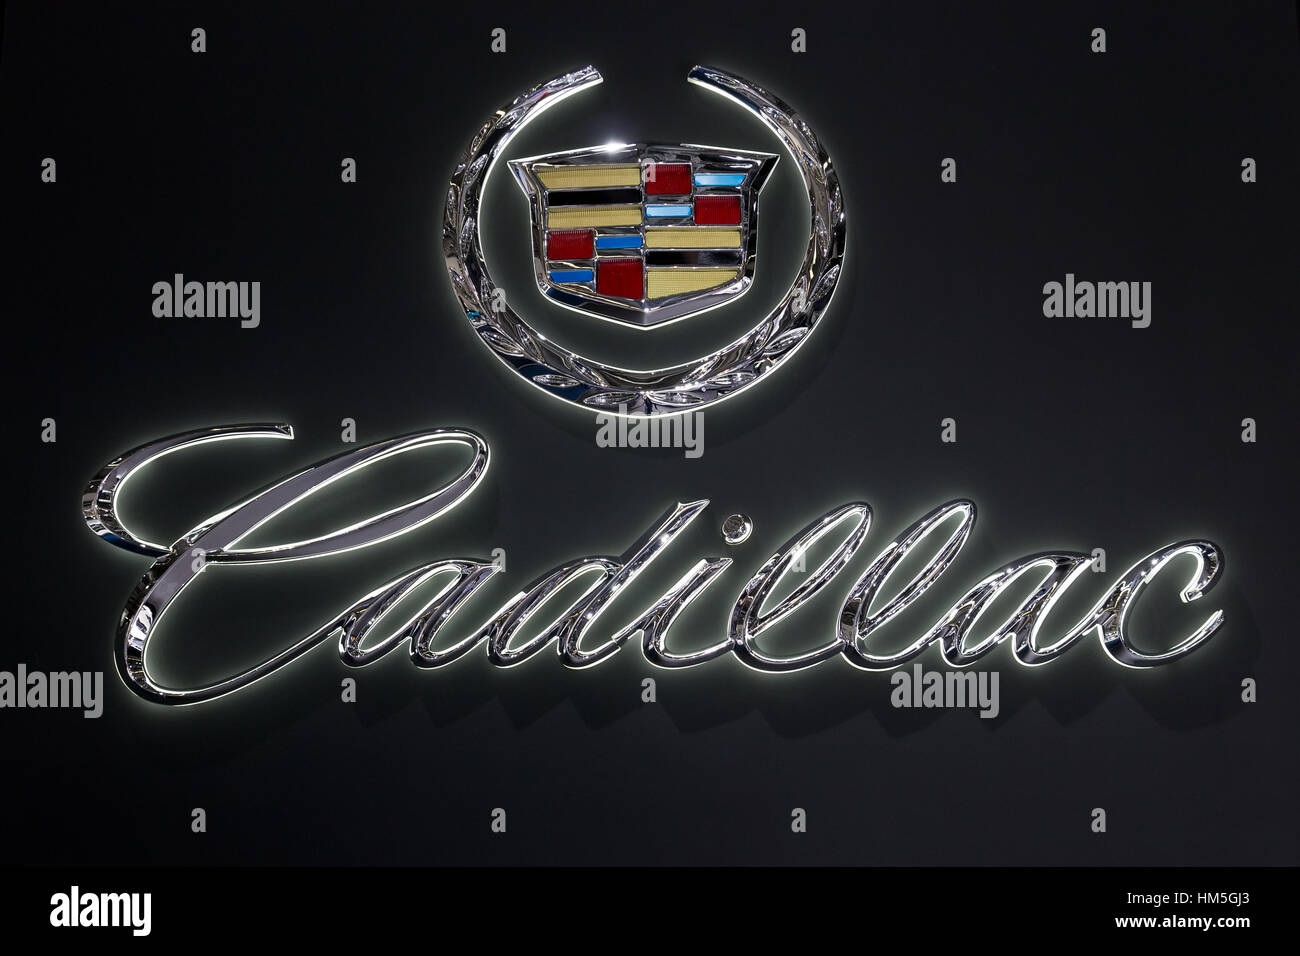 FRANKFURT, GERMANY - SEP 13: Cadillac symbol at the IAA motor show on Sep 13, 2013 in Frankfurt. More than 1.000 - Stock Image